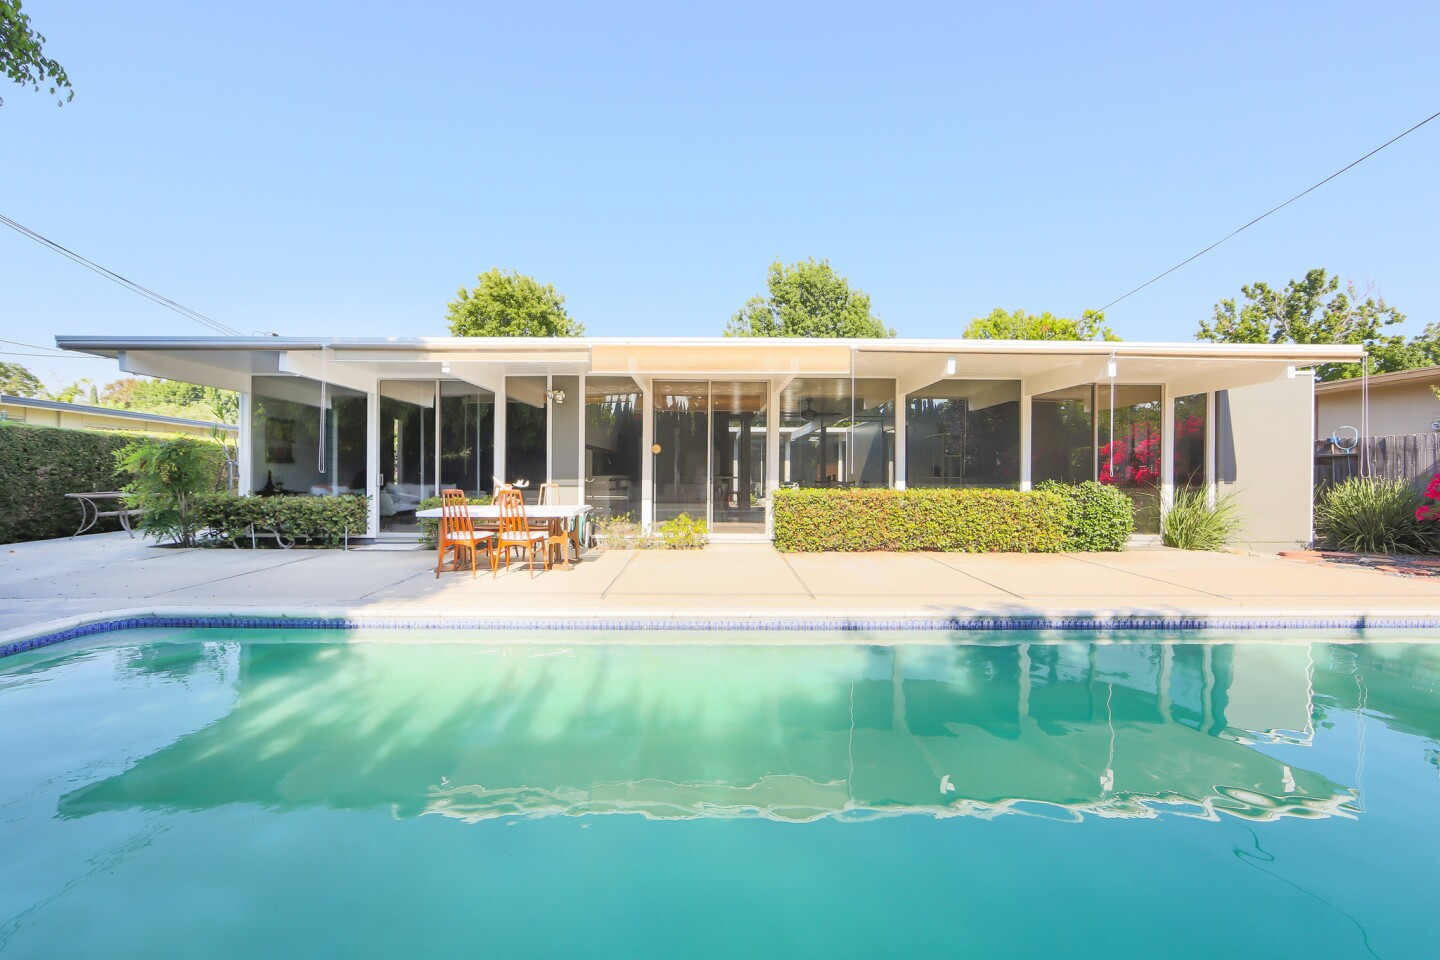 Home of the Day: An Eichler original in Orange